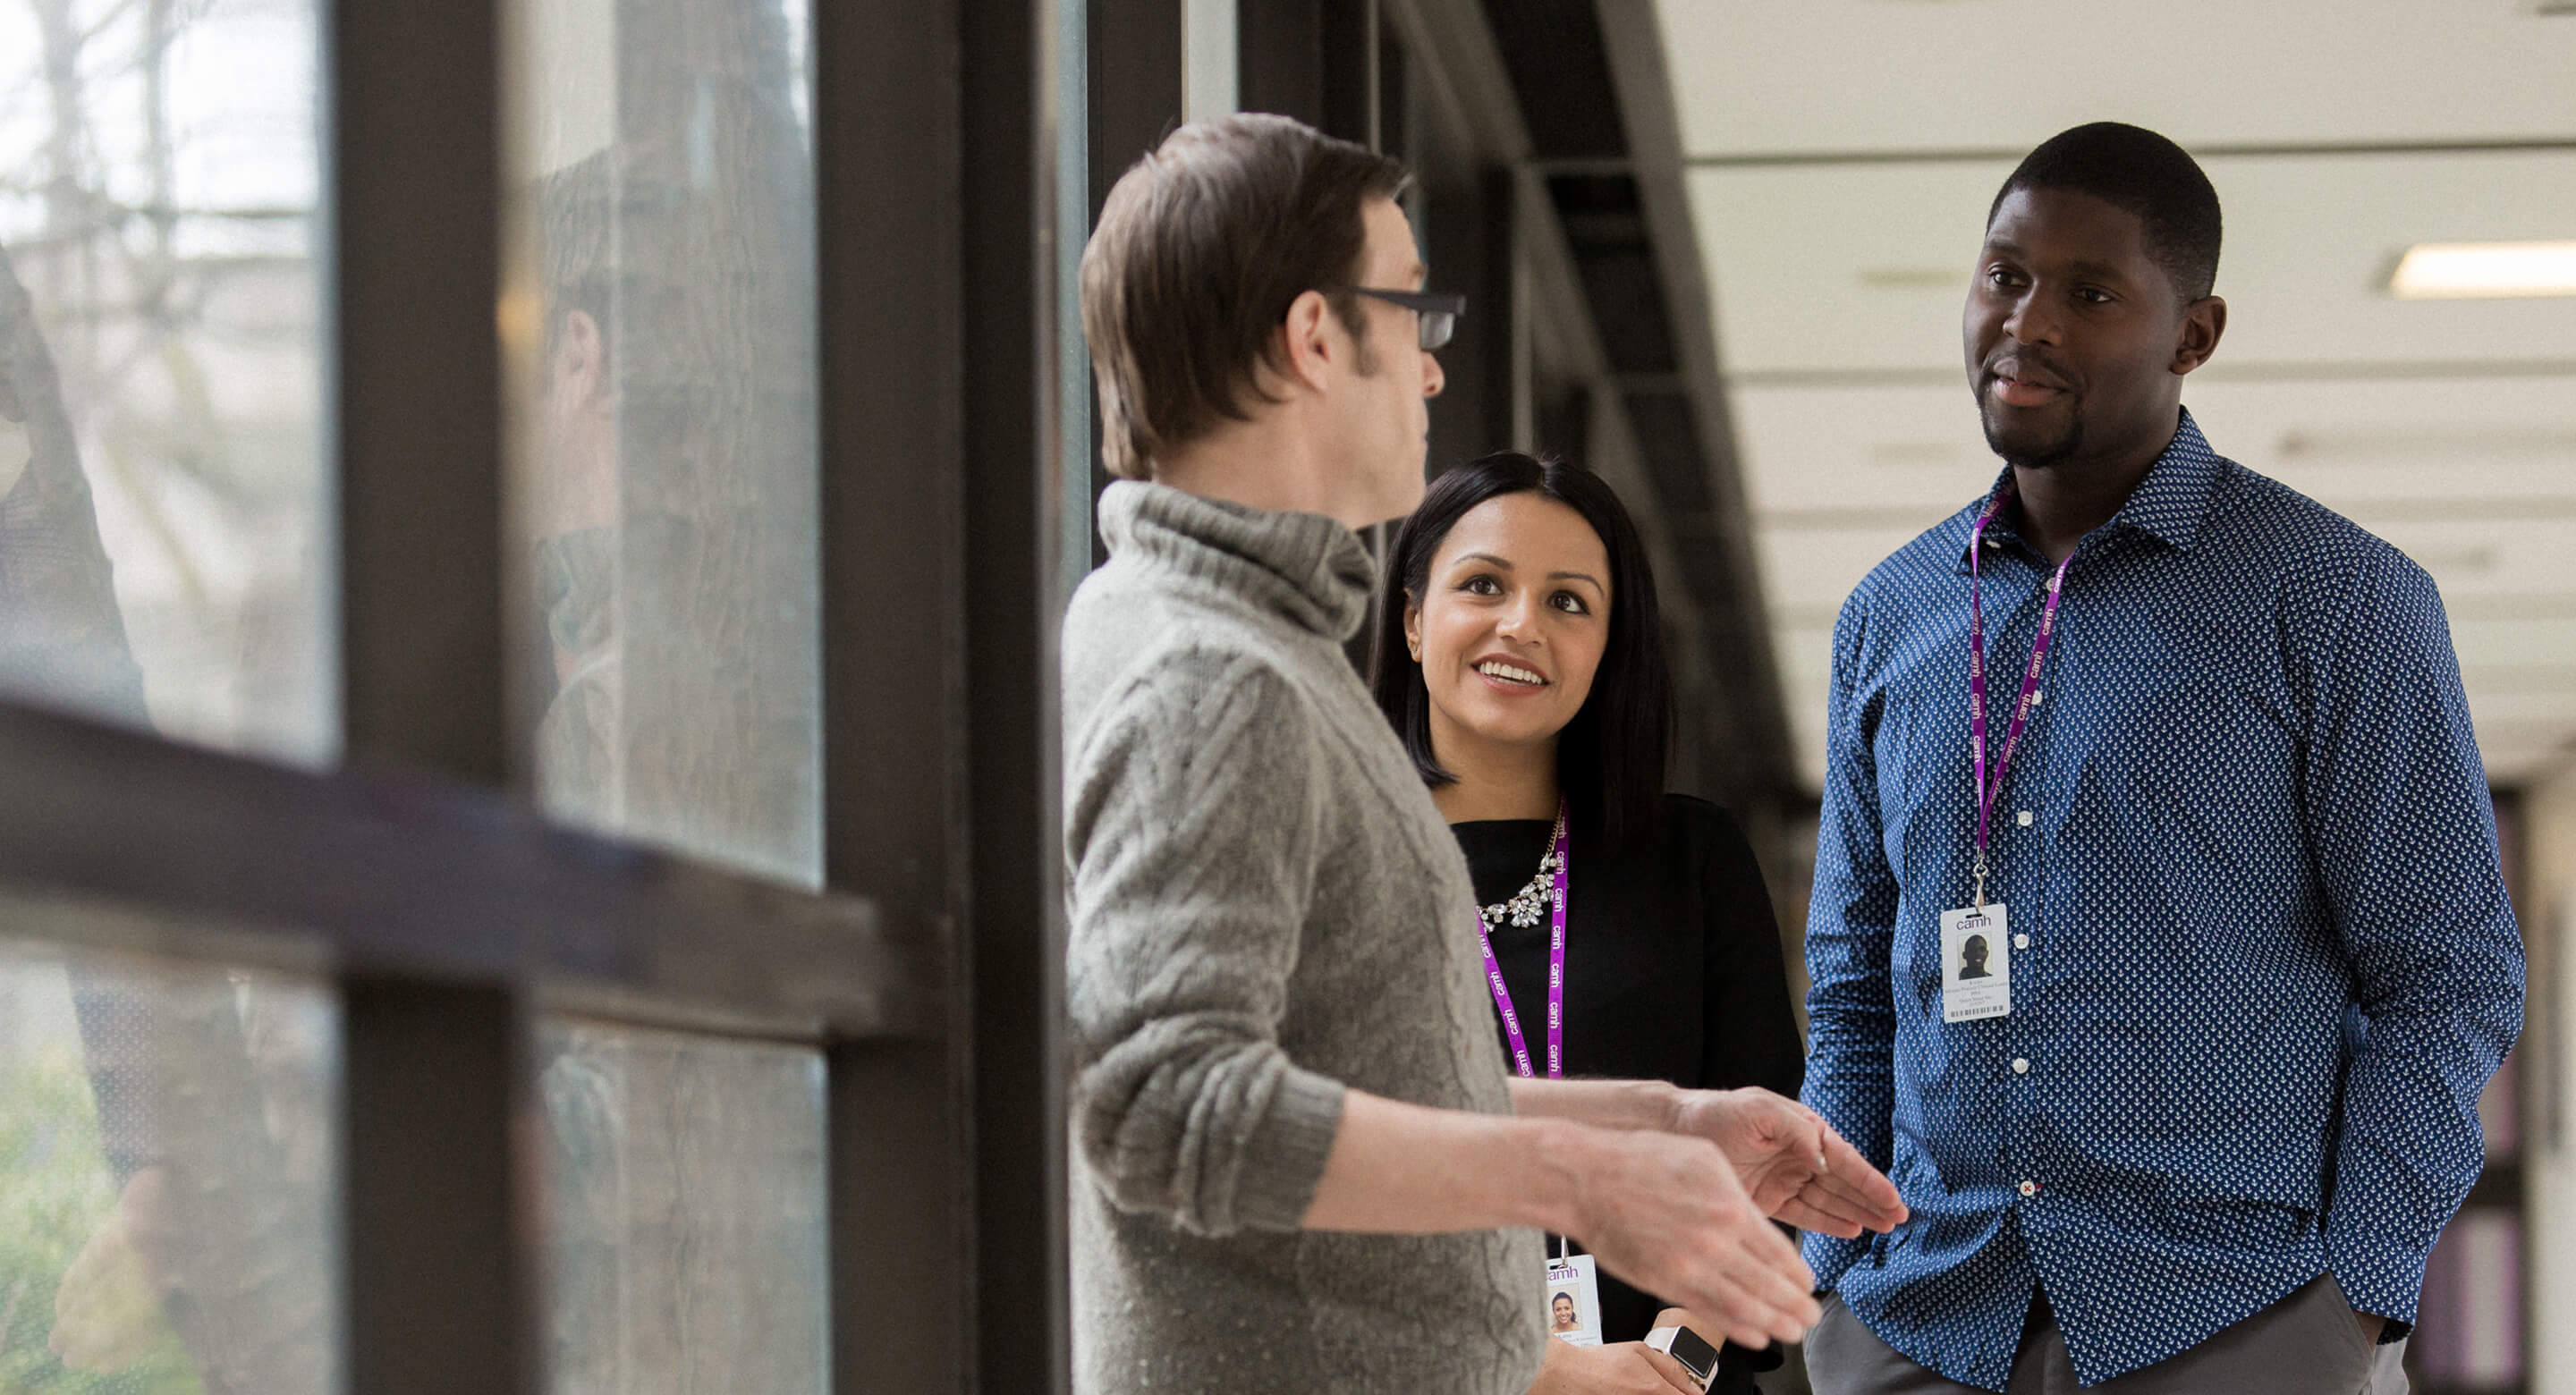 CAMH staff members converse in the hallway.